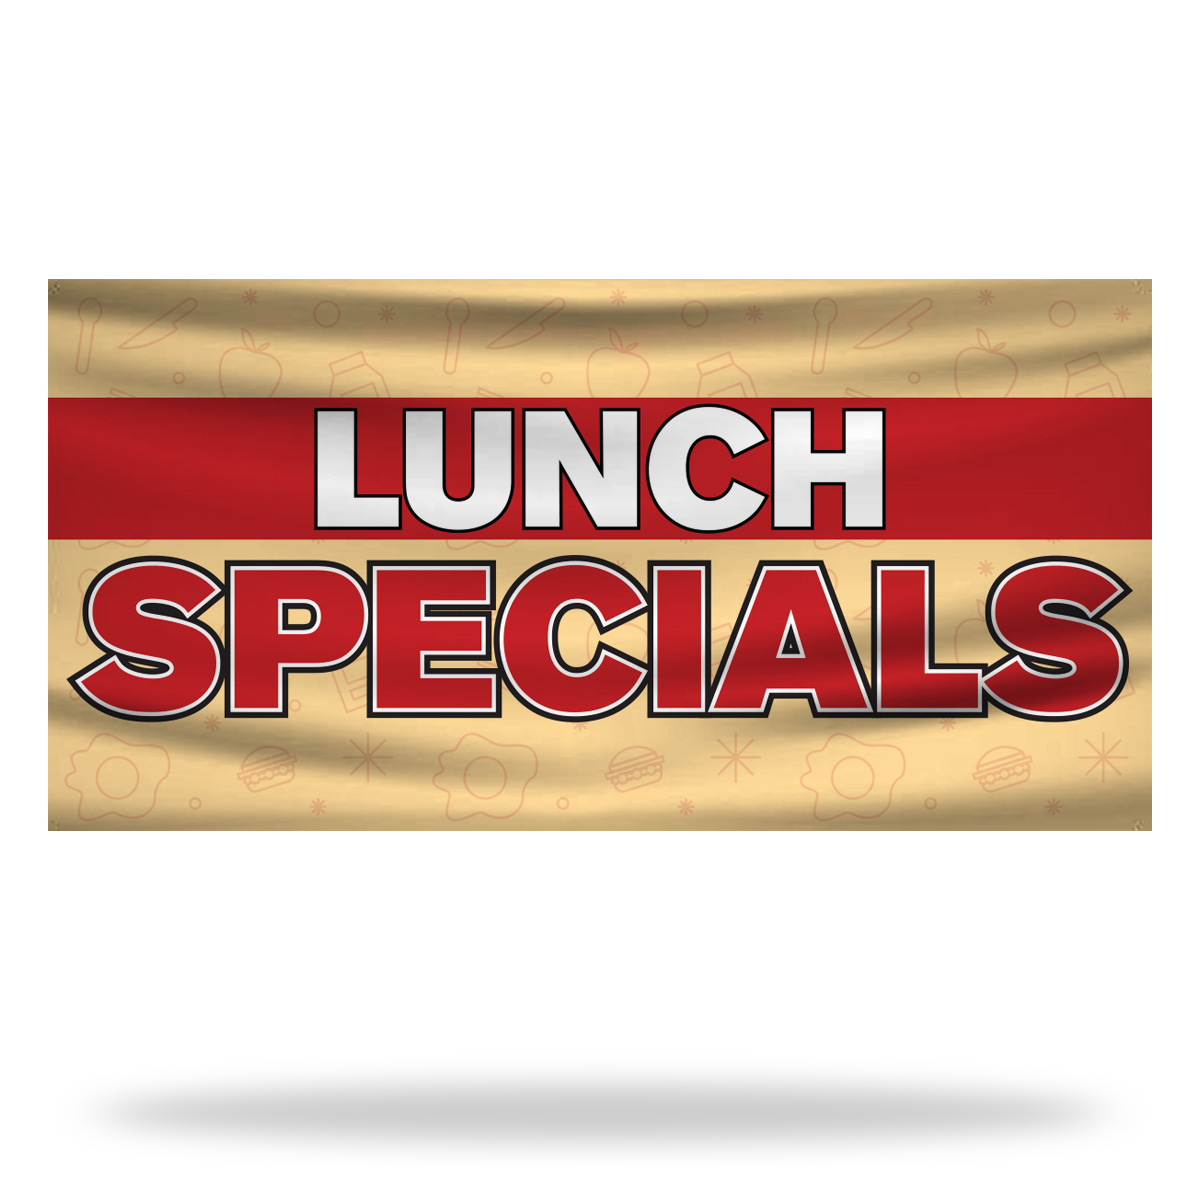 Lunch Specials Flags & Banners Design 02